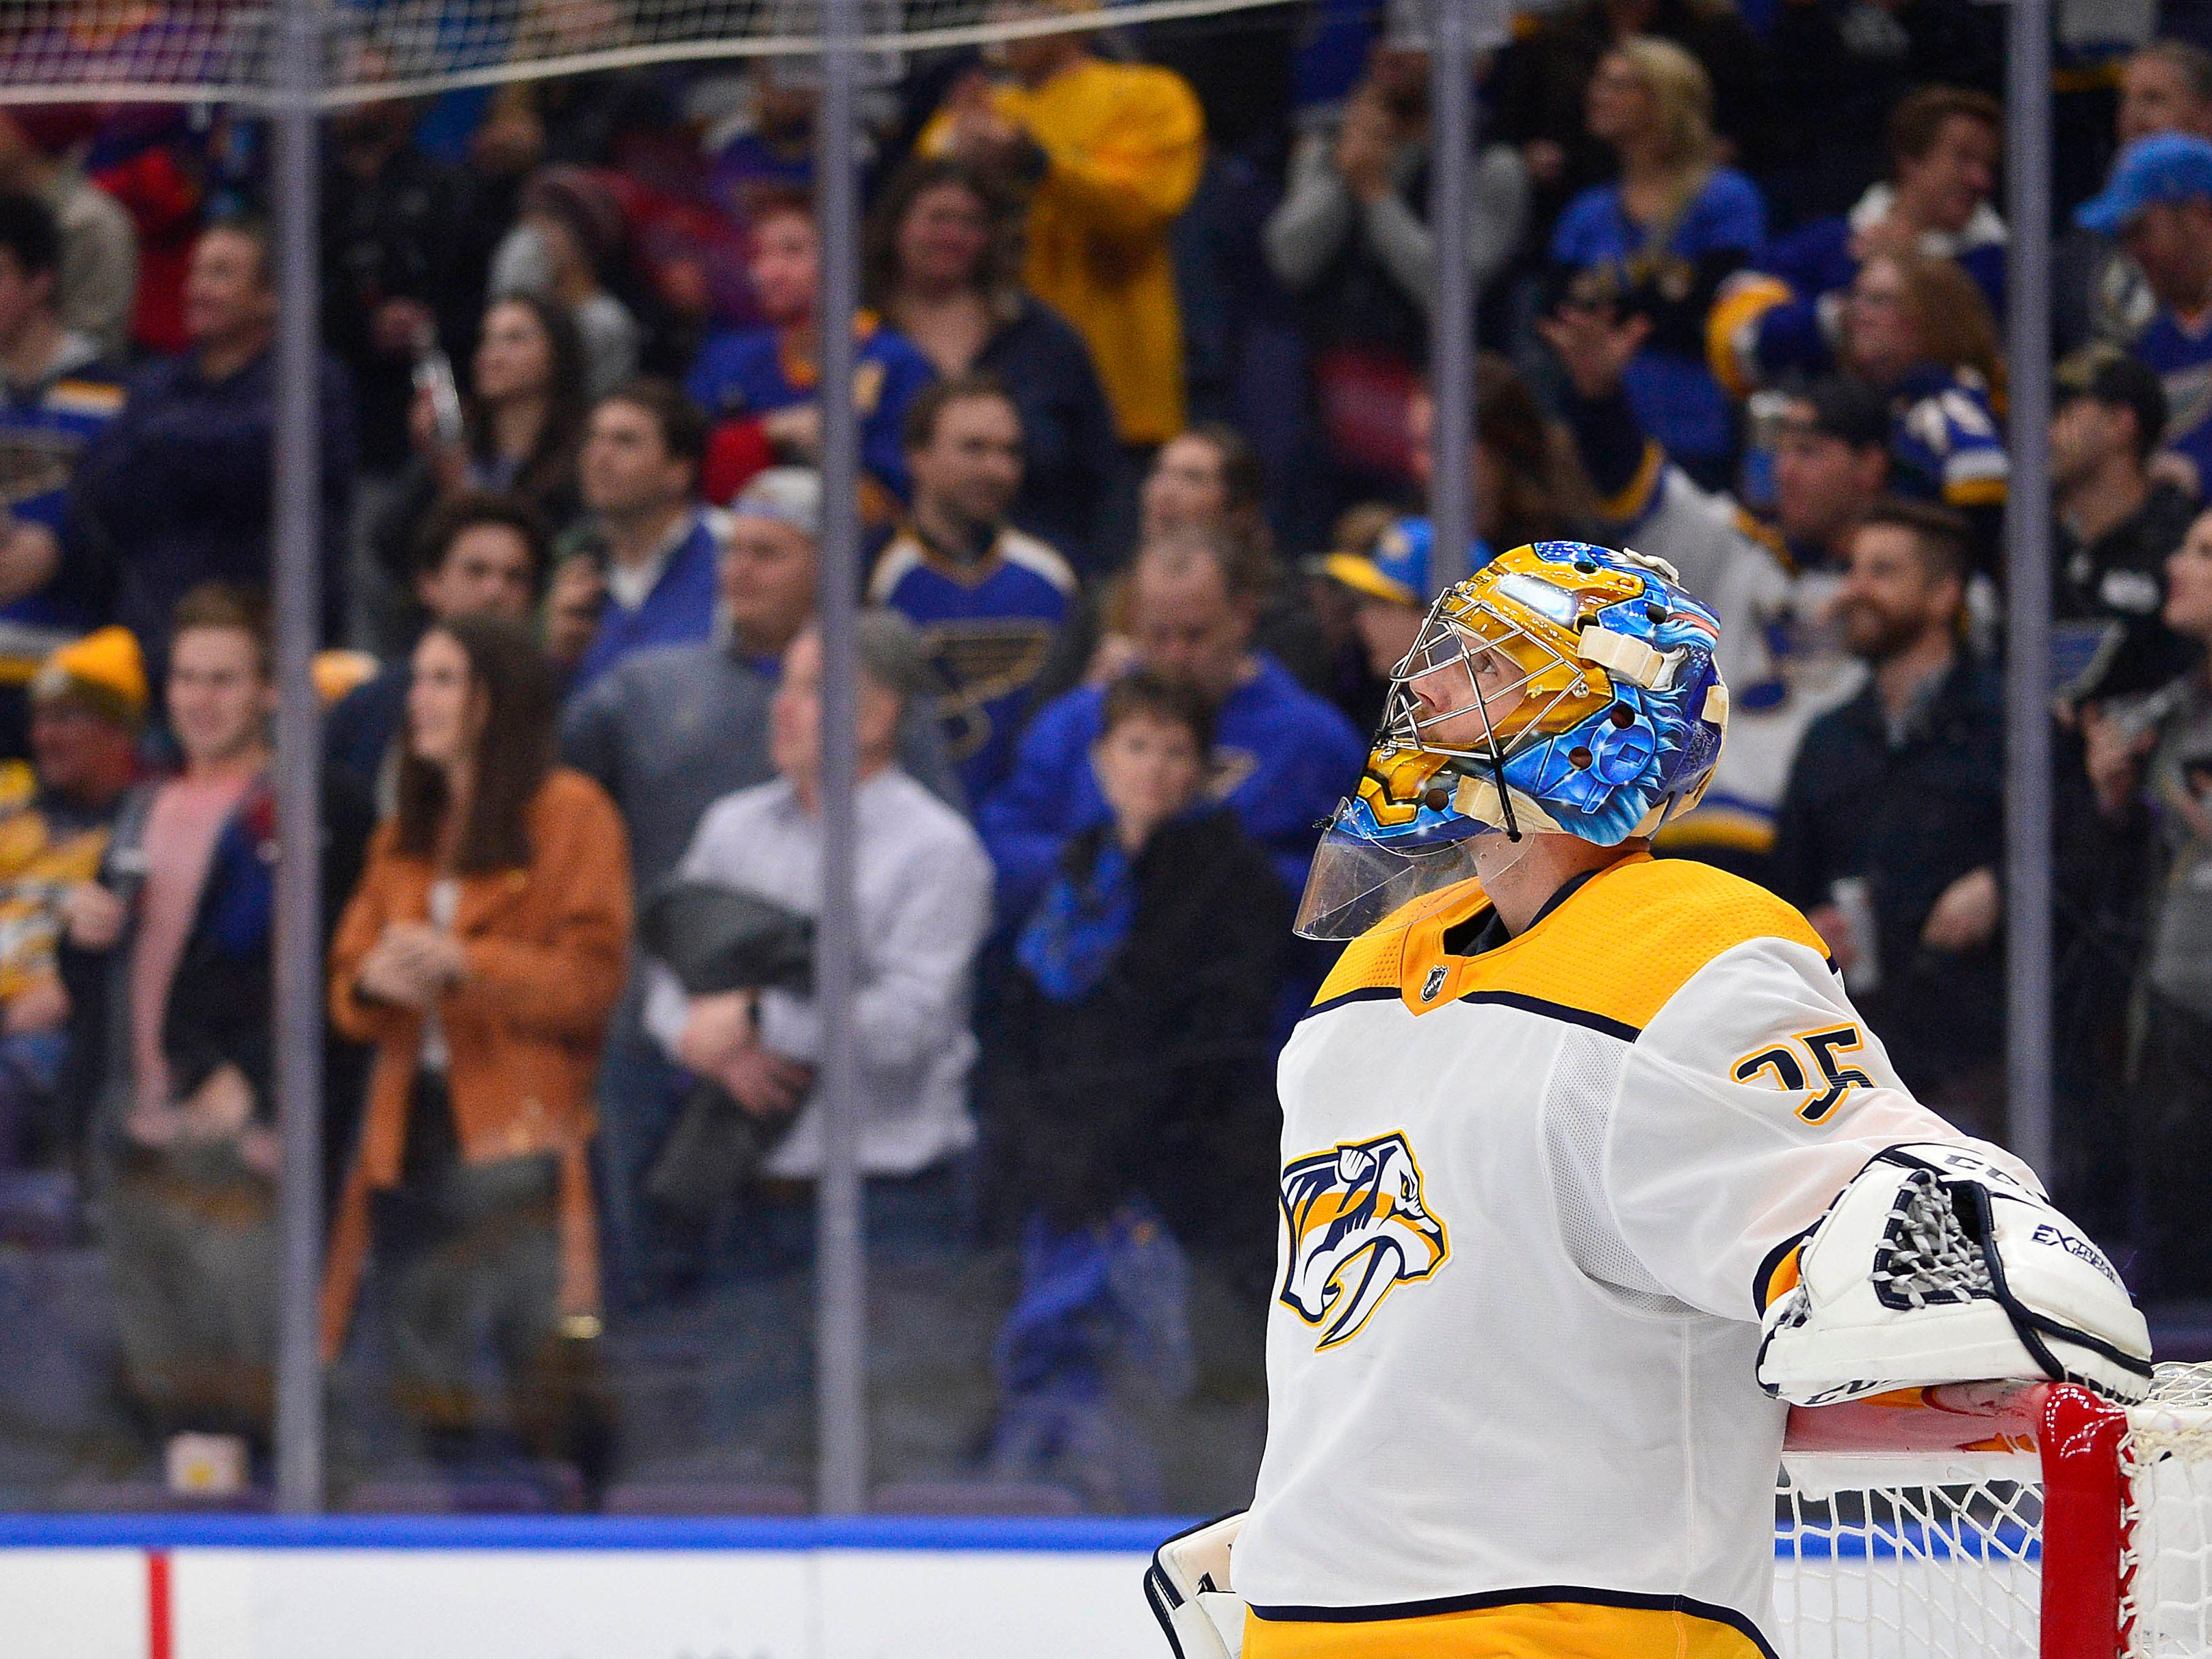 Nashville Predators goaltender Pekka Rinne (35) looks on after giving up a goal to the St. Louis Blues during the third period at Enterprise Center.